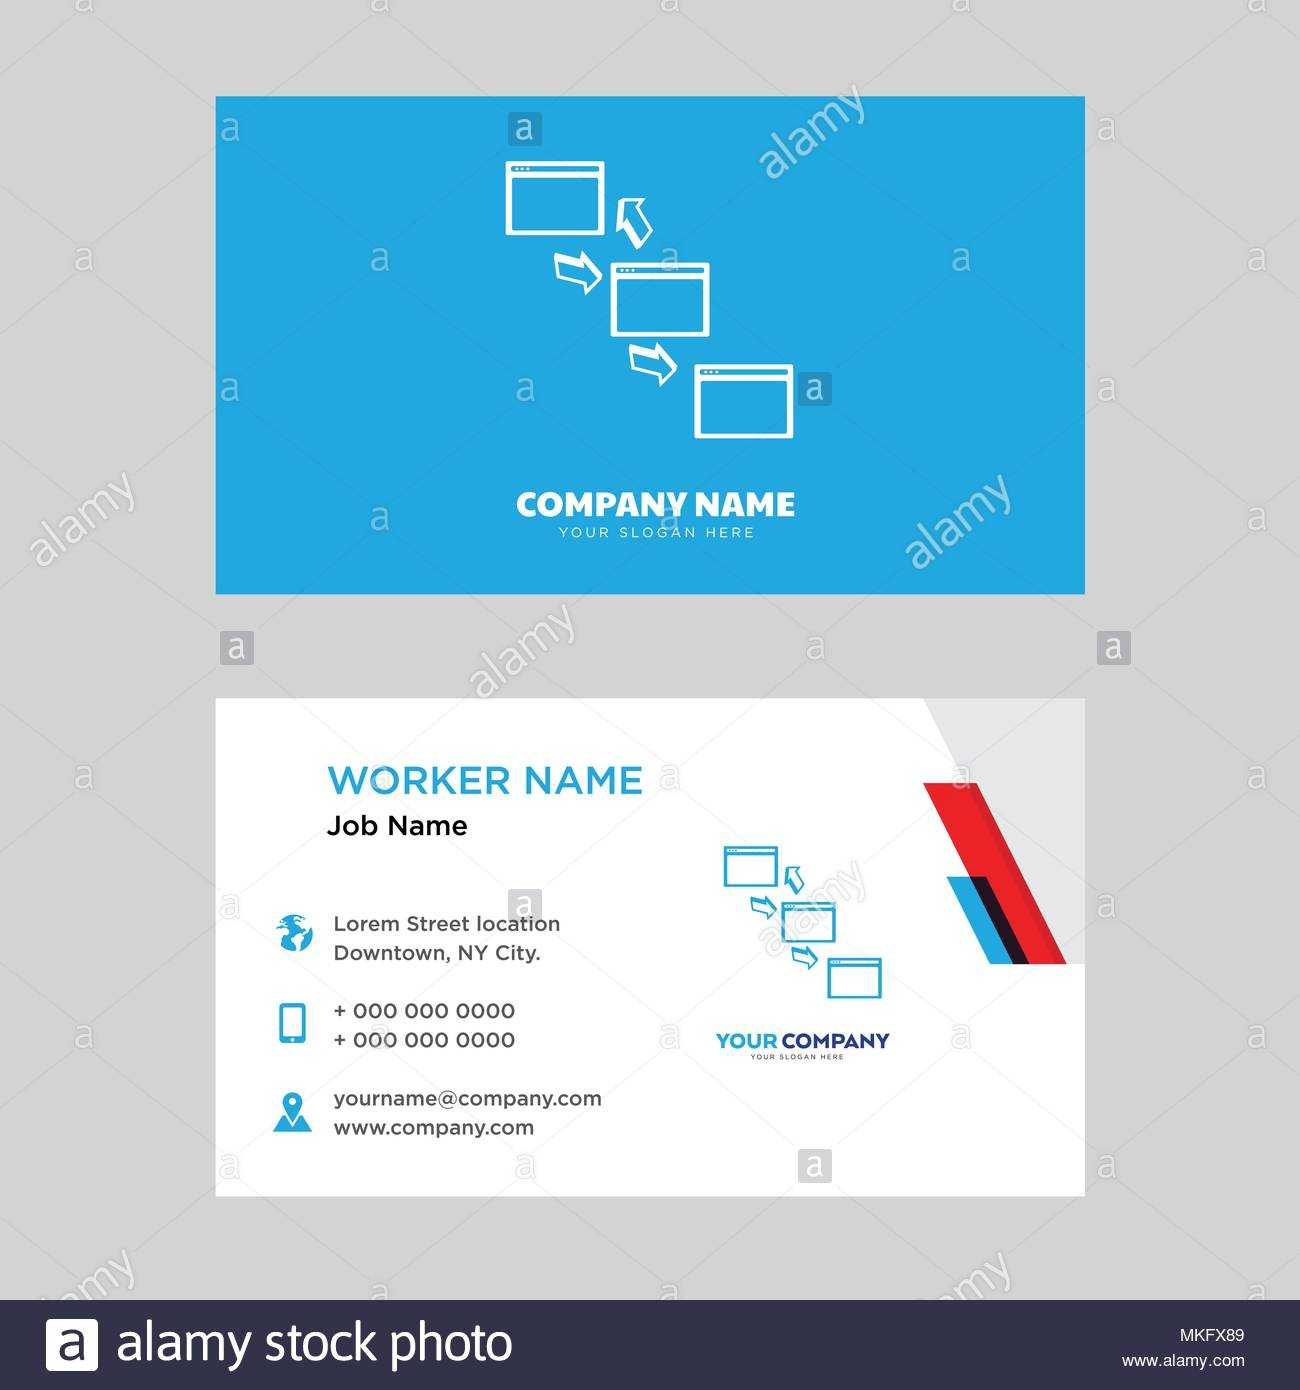 Networking Business Card Design Template, Visiting For Your Throughout Networking Card Template